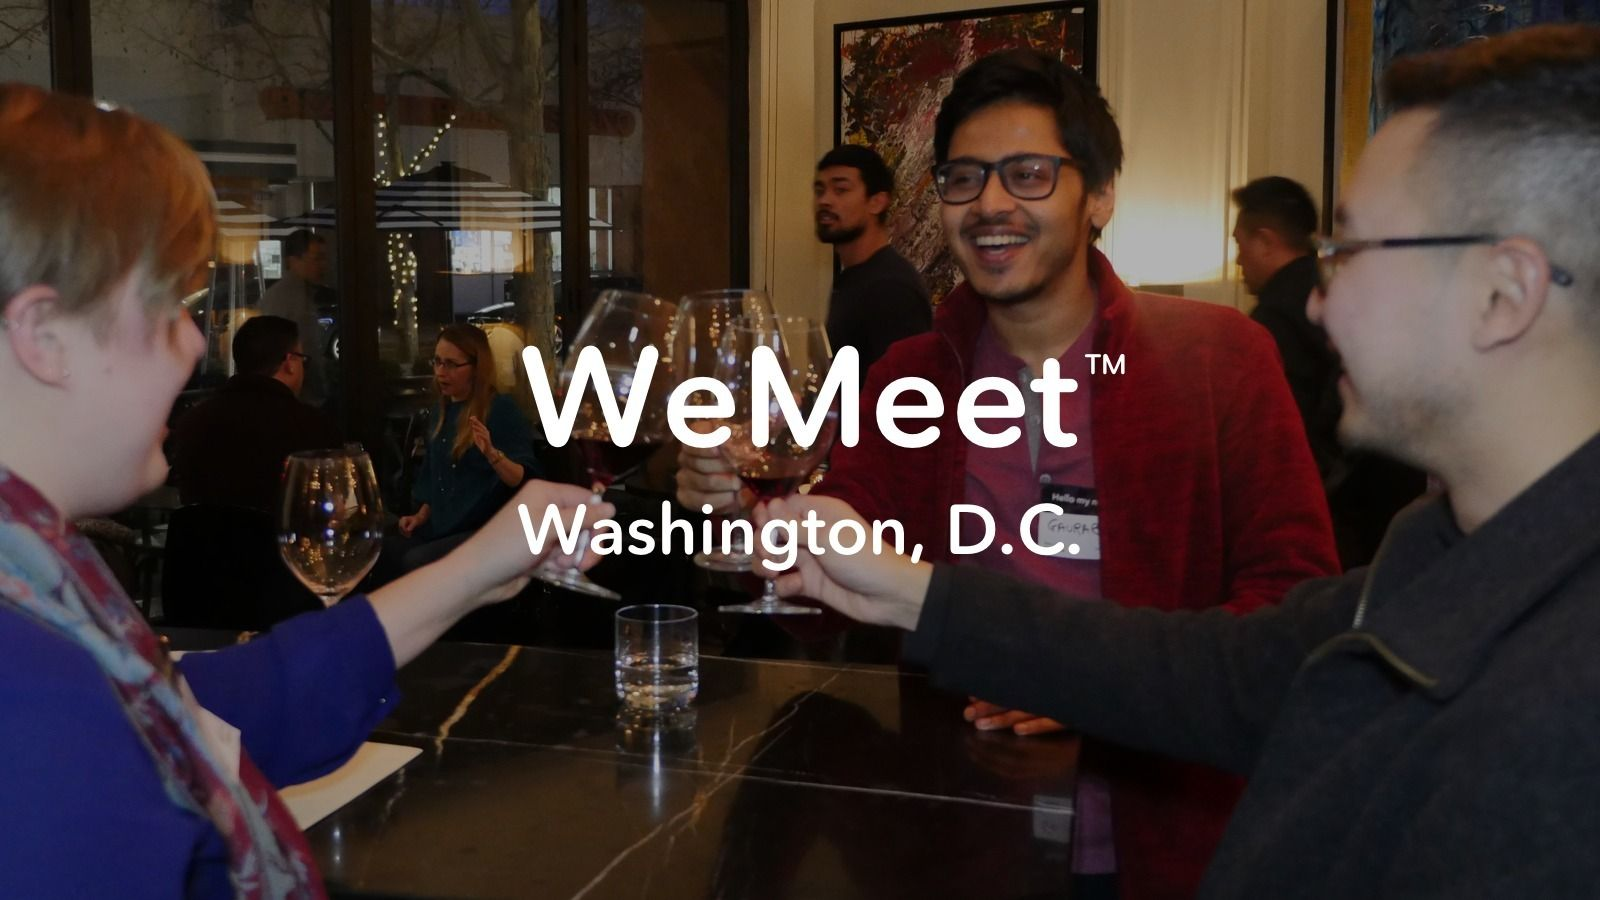 WeMeet Washington, D.C. Networking - Meet New People